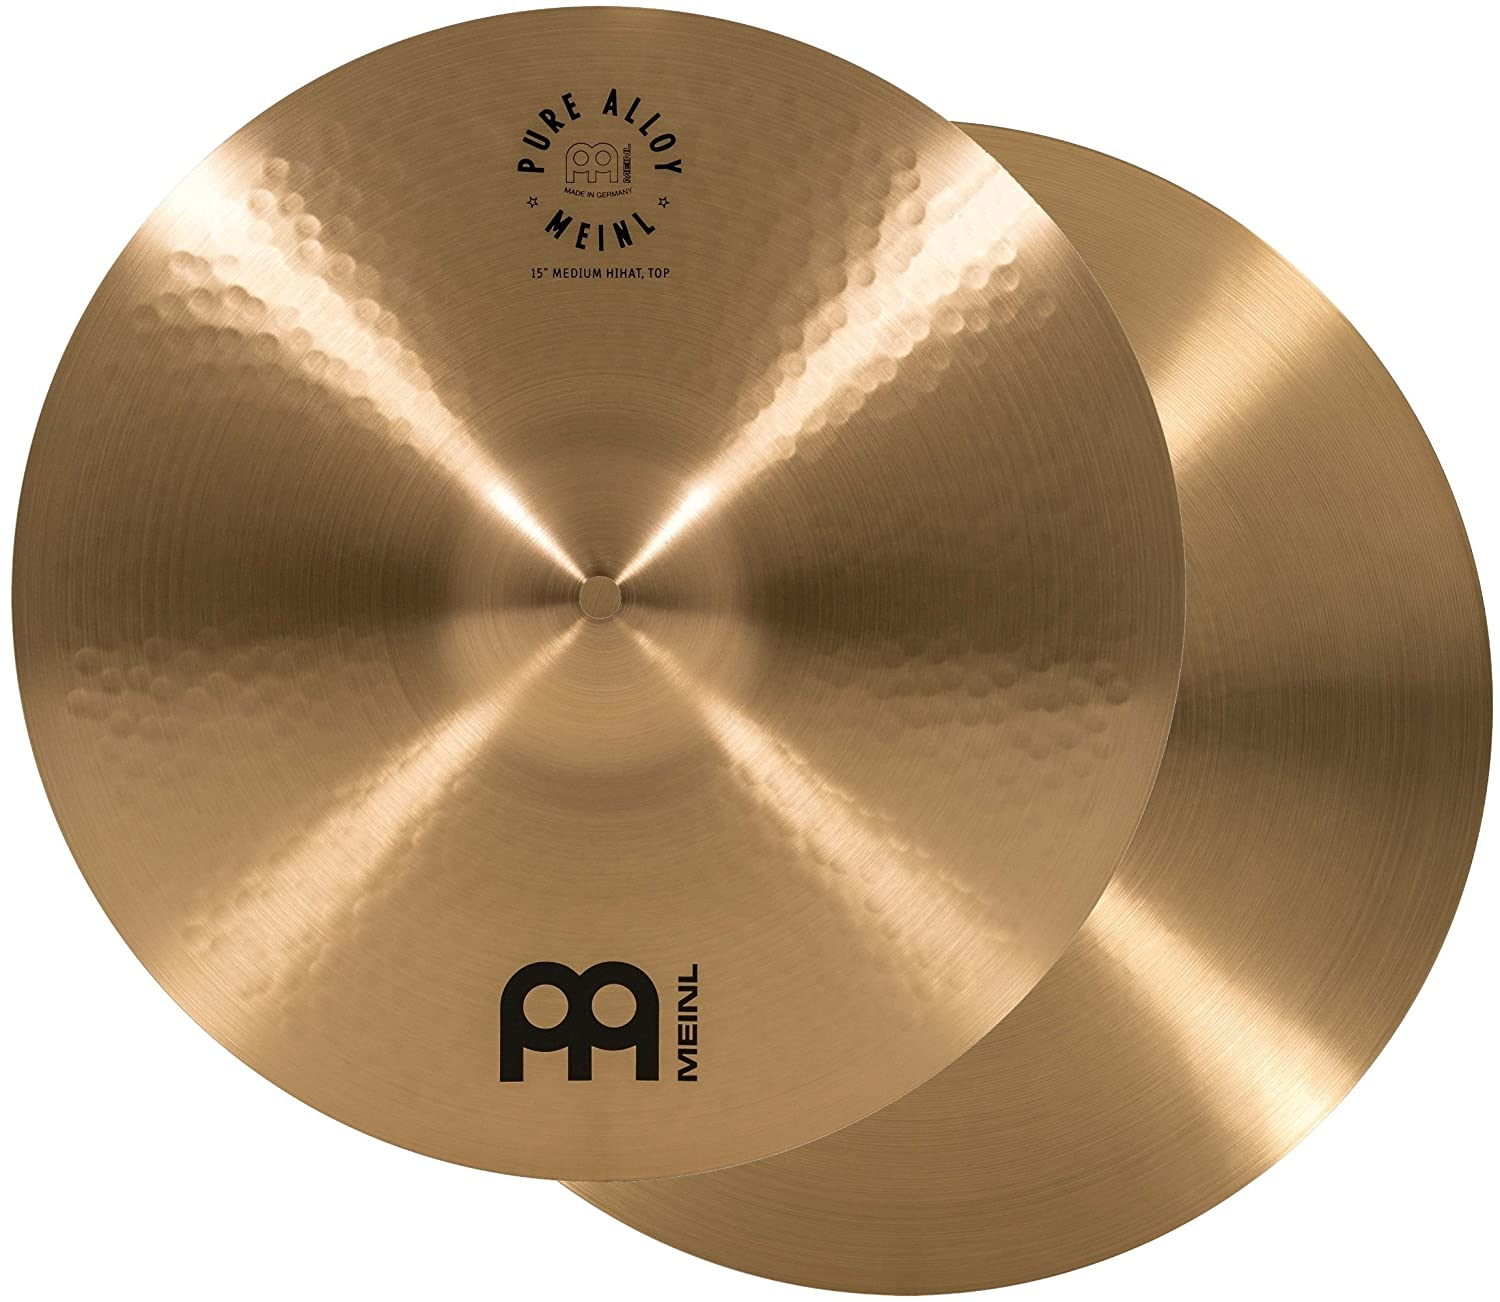 MEINL Cymbals マイネル Pure Alloy Series ハイハットシンバル 15